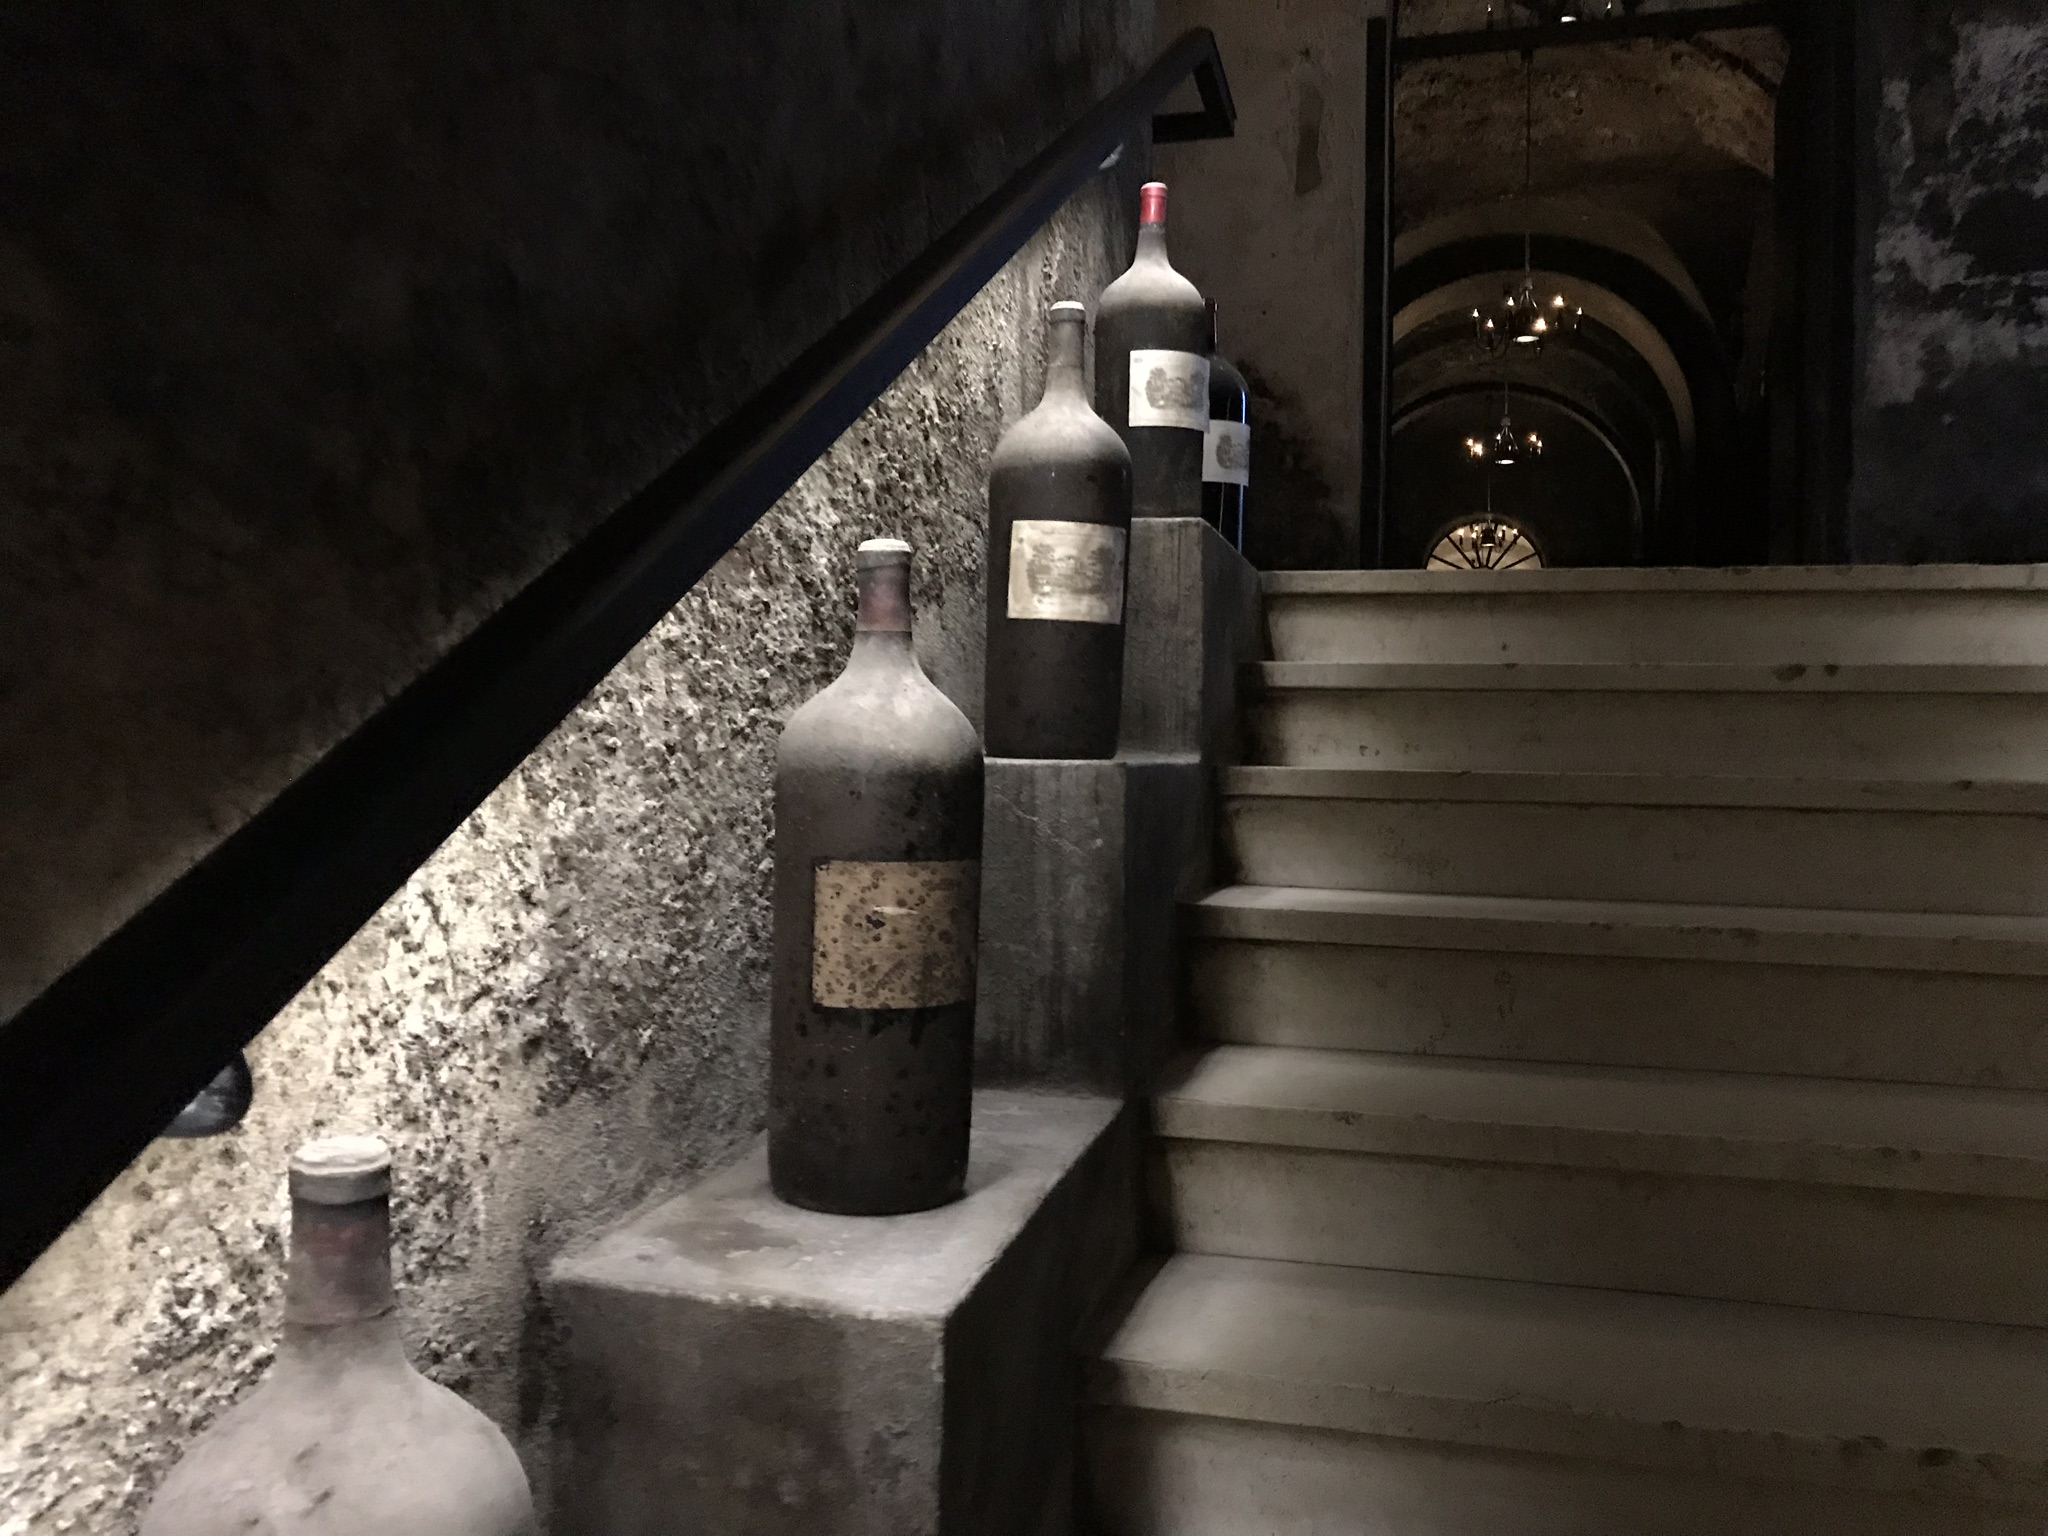 CHATEAU DUHART-MILON - Art space in a wineryDomaines Barons de RothschildPauillac (France)2019